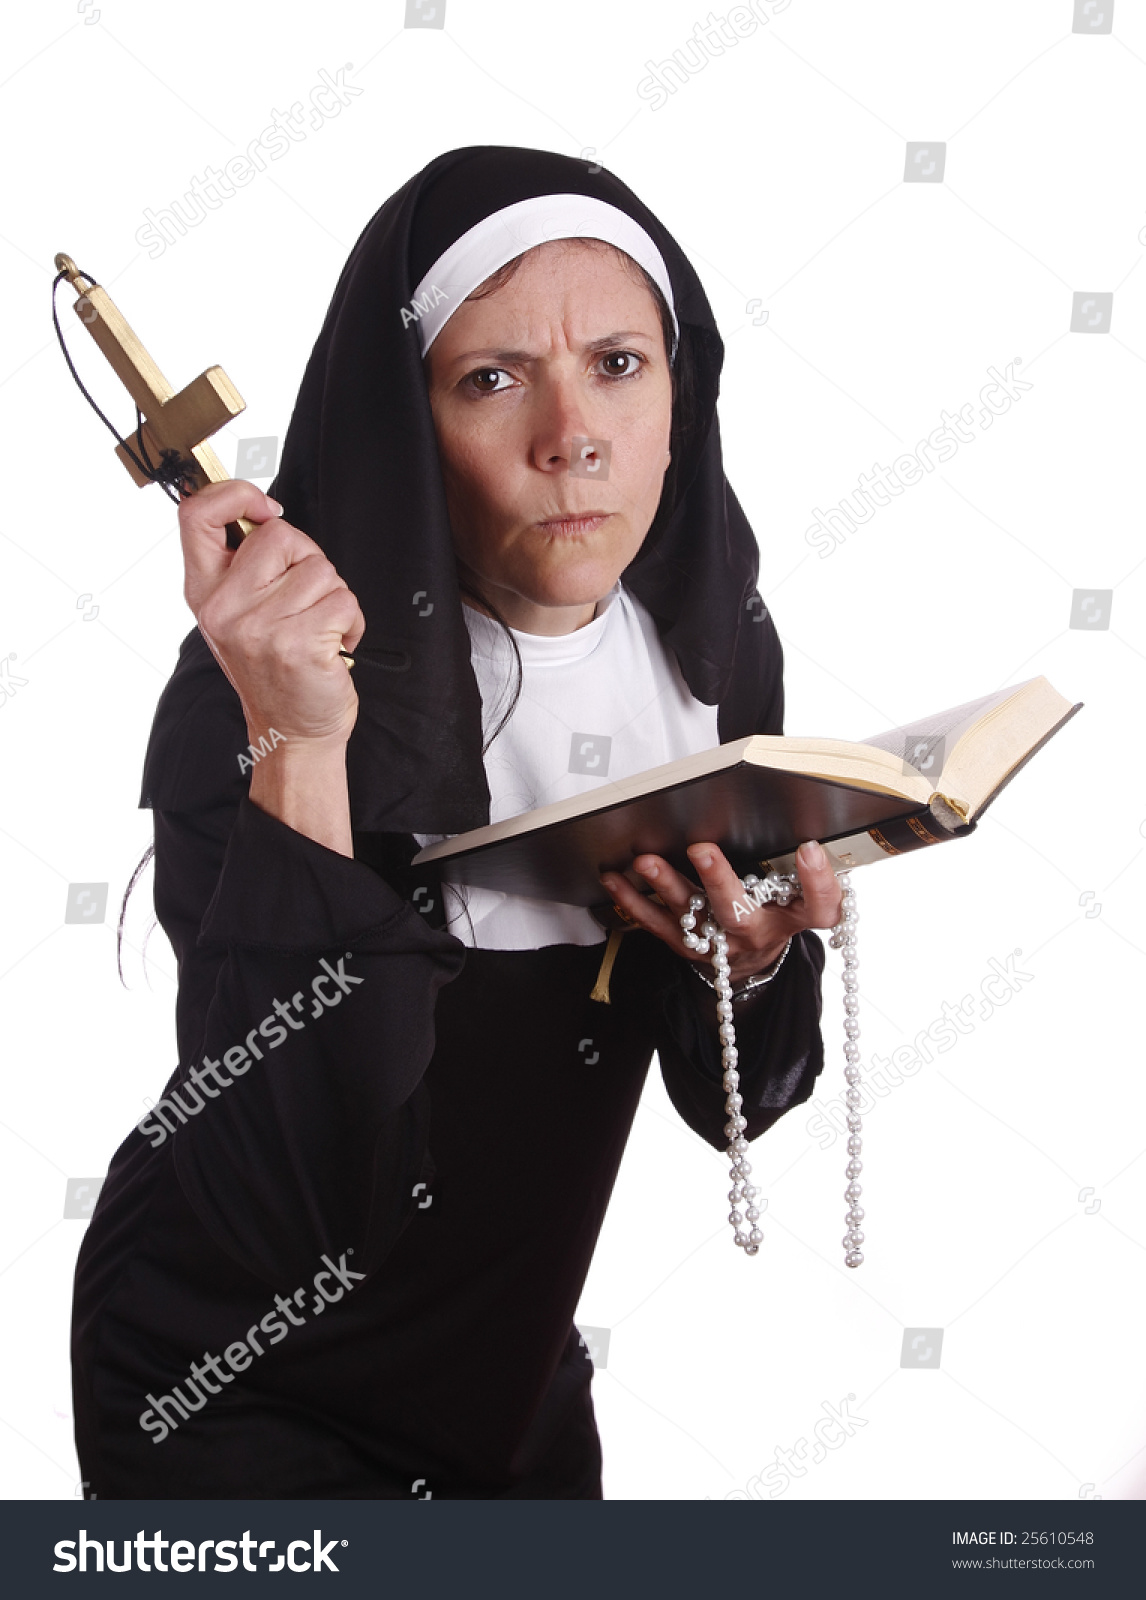 different nun serious funny expression stock photo (100% legal